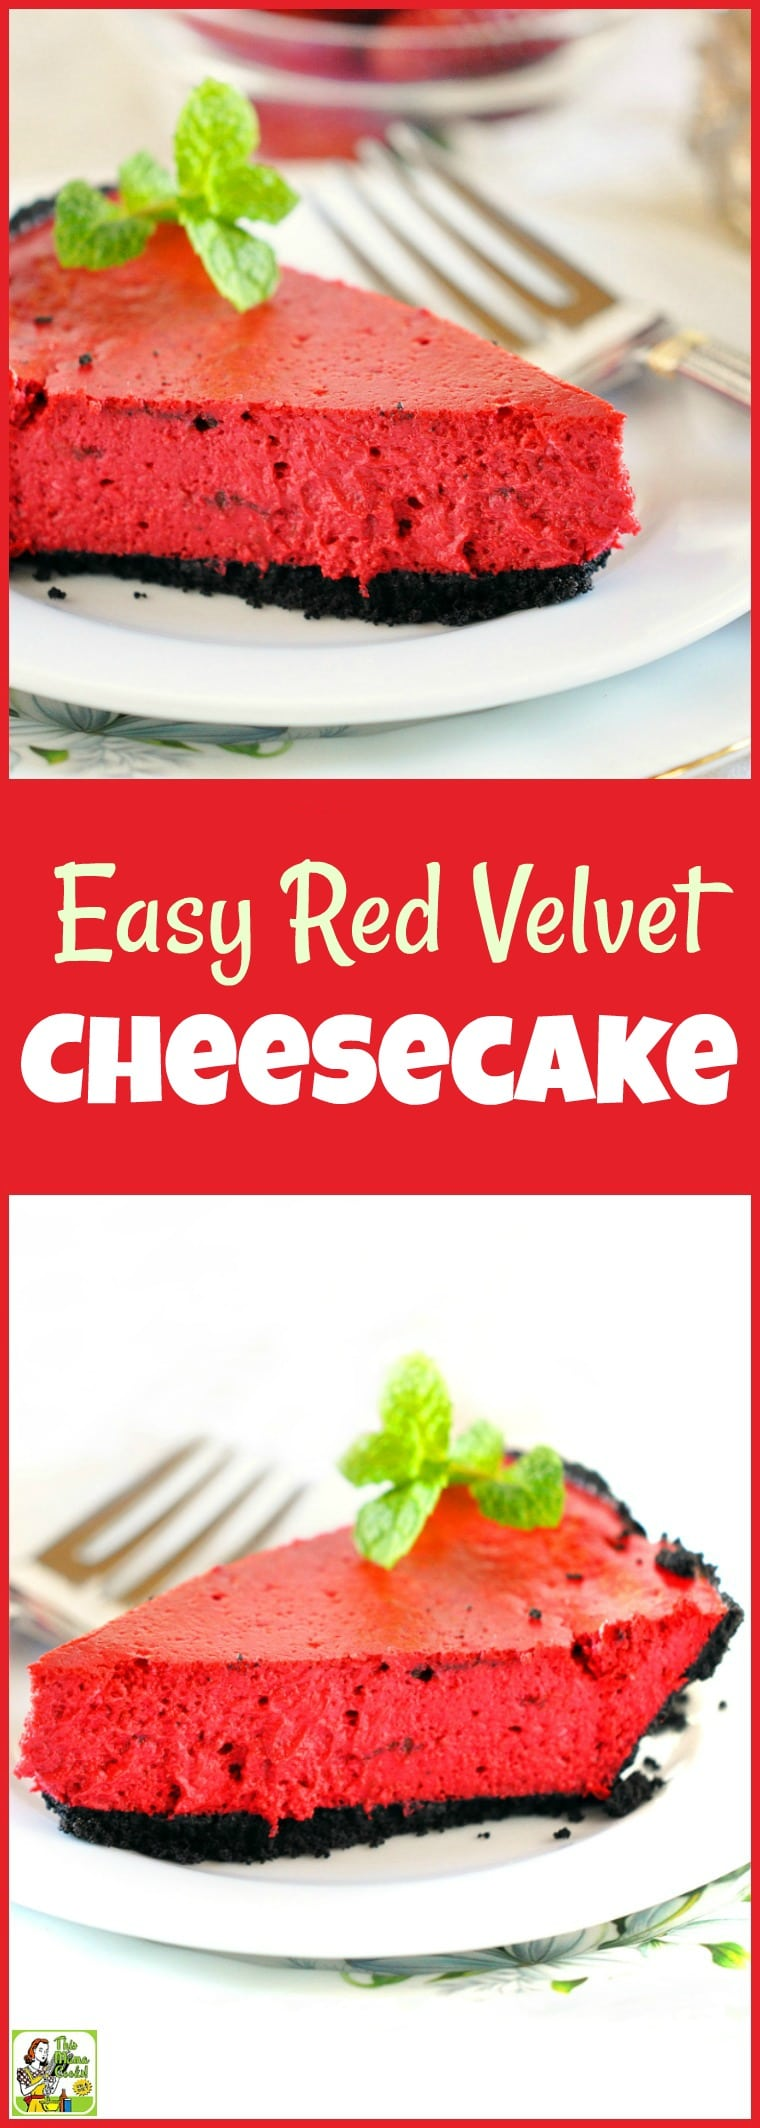 Looking for an Easy Red Velvet Cheesecake recipe? Make this simple and healthy red velvet dessert recipe for Valentine\'s Day, Christmas or Fourth of July. Gluten free and dairy free options. Diabetic friendly. #recipe #easy #recipeoftheday #healthyrecipes #glutenfree #easyrecipes #desserts #dessertrecipes #dessertideas #baking #bakingrecipes #easybaking #cake #cakerecipes #cheesecake #cheesecakerecipes #redvelvet #redvelvetcake #diabeticrecipes #diabeticlifestyle #diabetic #diabeticliving